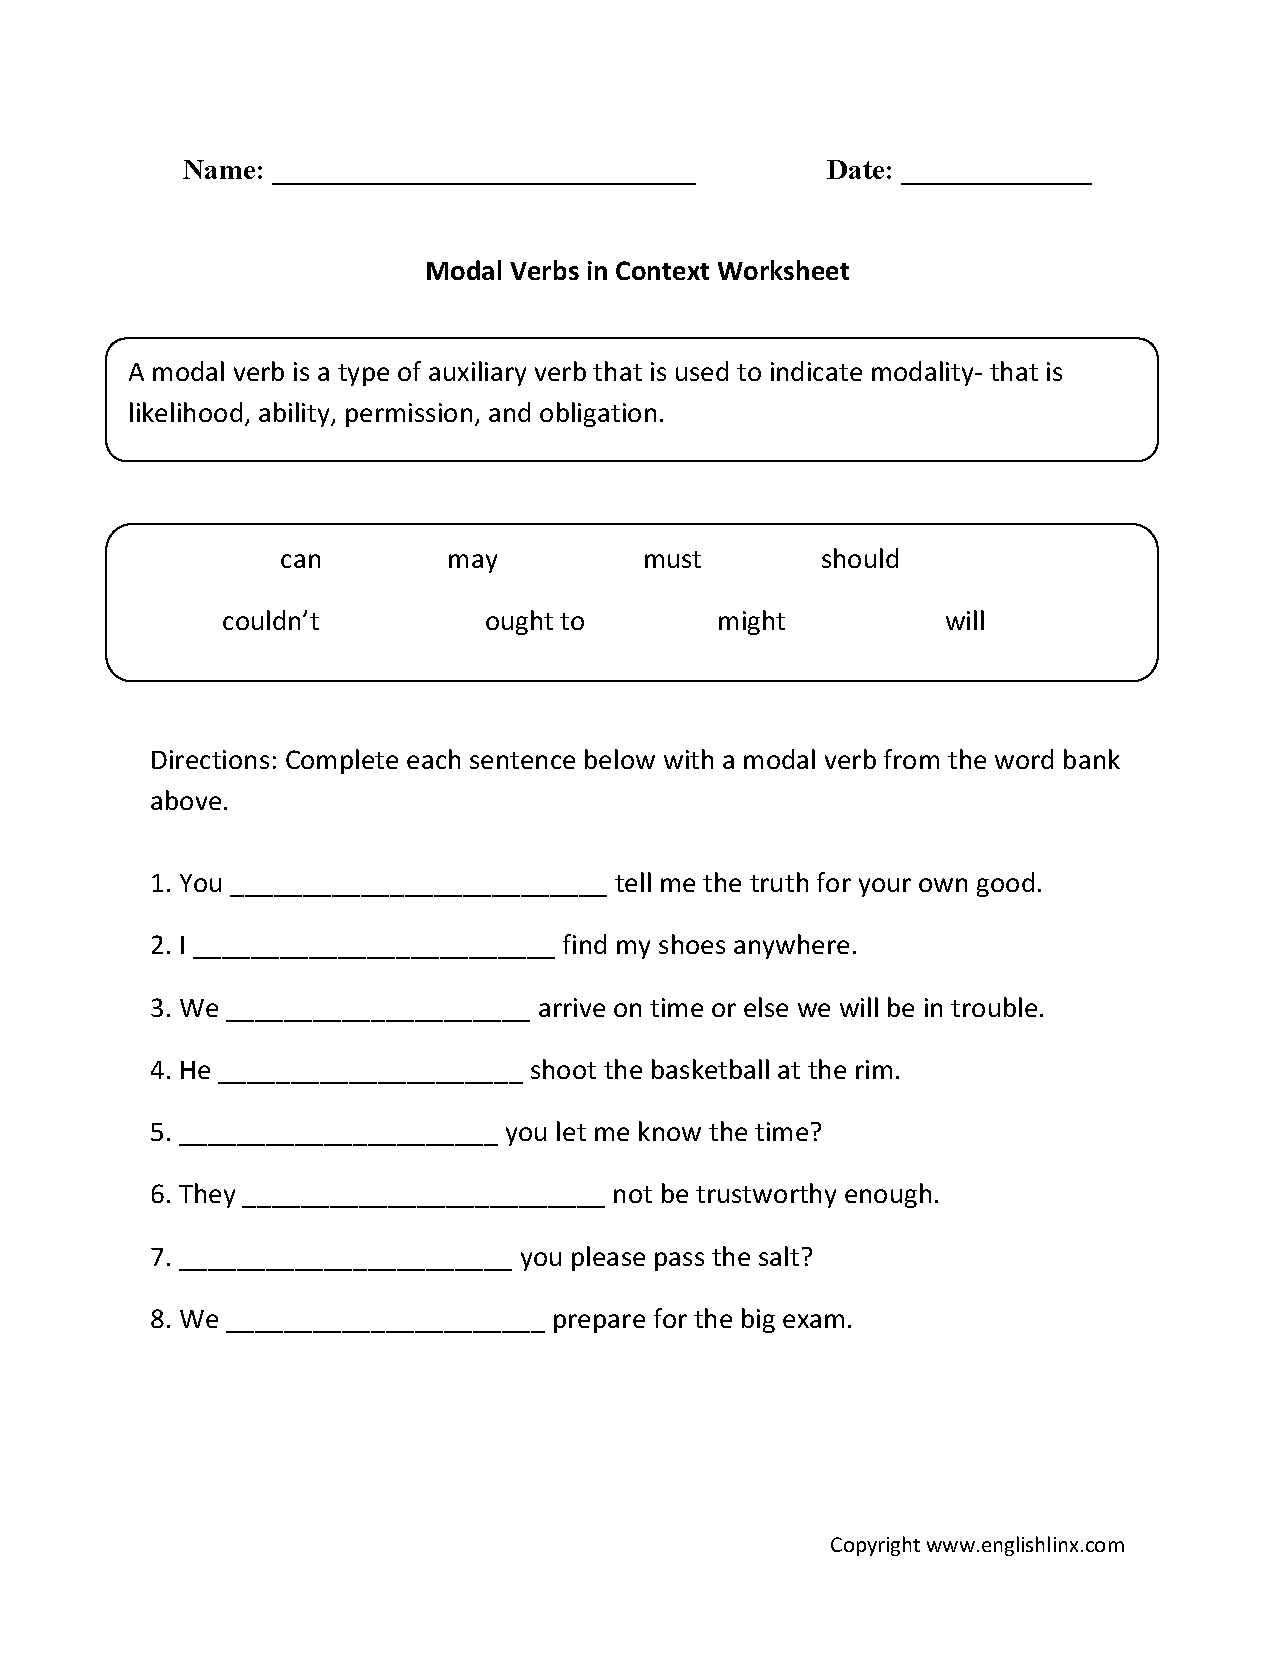 Aldiablosus  Pretty Worksheet For Verbs  Coffemix With Luxury Englishlinxcom  Verbs Worksheets With Appealing Rhombus Worksheets Also Th Grade Math Worksheets Word Problems In Addition Frog And Toad Are Friends Worksheets And Long Vowel I Worksheets As Well As Fun Fractions Worksheets Additionally Noun Worksheets Grade  From Coffemixcom With Aldiablosus  Luxury Worksheet For Verbs  Coffemix With Appealing Englishlinxcom  Verbs Worksheets And Pretty Rhombus Worksheets Also Th Grade Math Worksheets Word Problems In Addition Frog And Toad Are Friends Worksheets From Coffemixcom